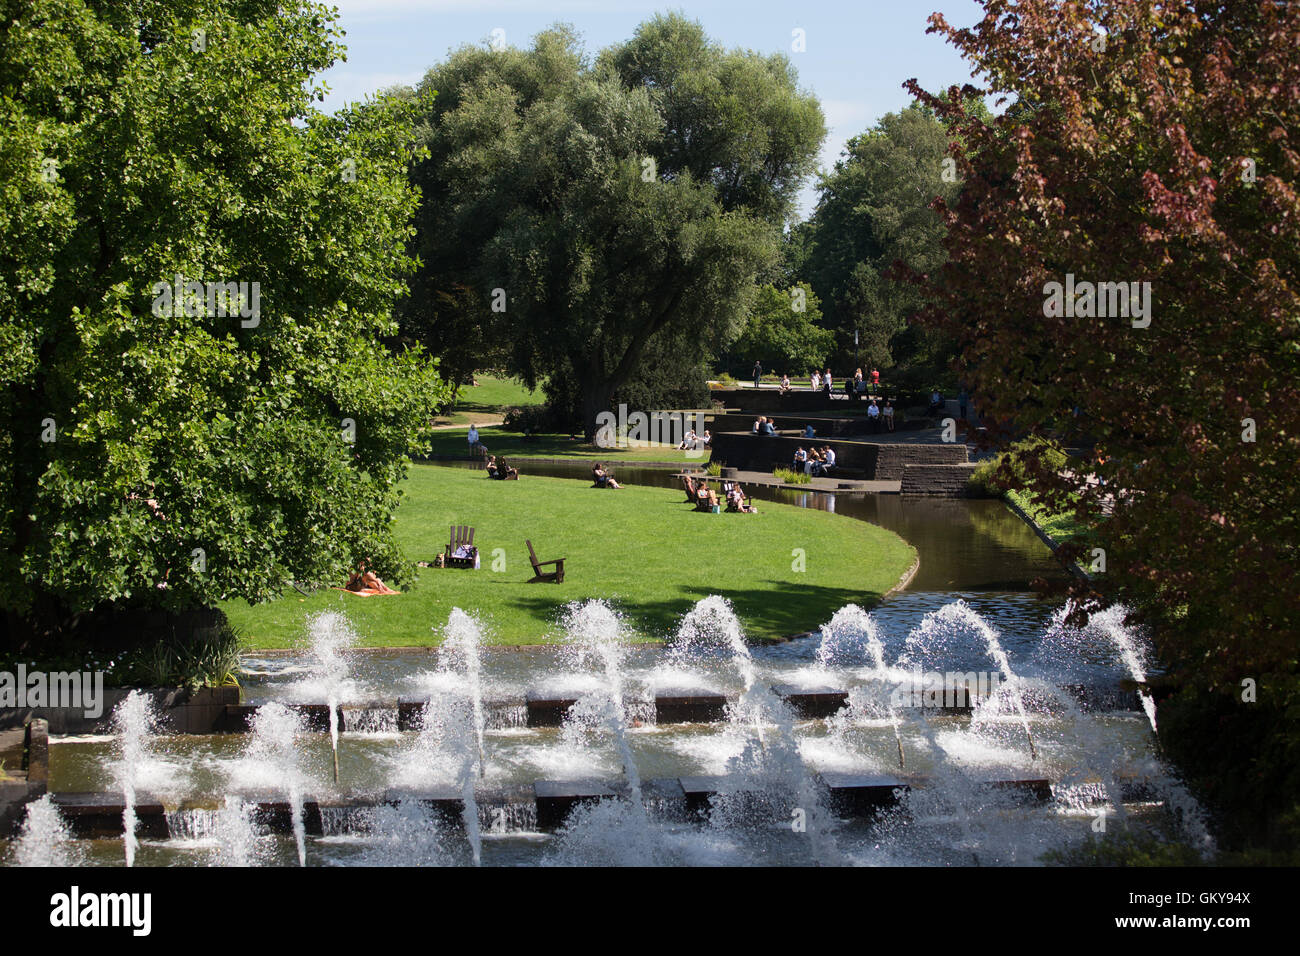 Hamburg, Germany. 24th Aug, 2016. People enjoying the sun next to a fountain in the park 'Planten un Blomen' - Stock Image